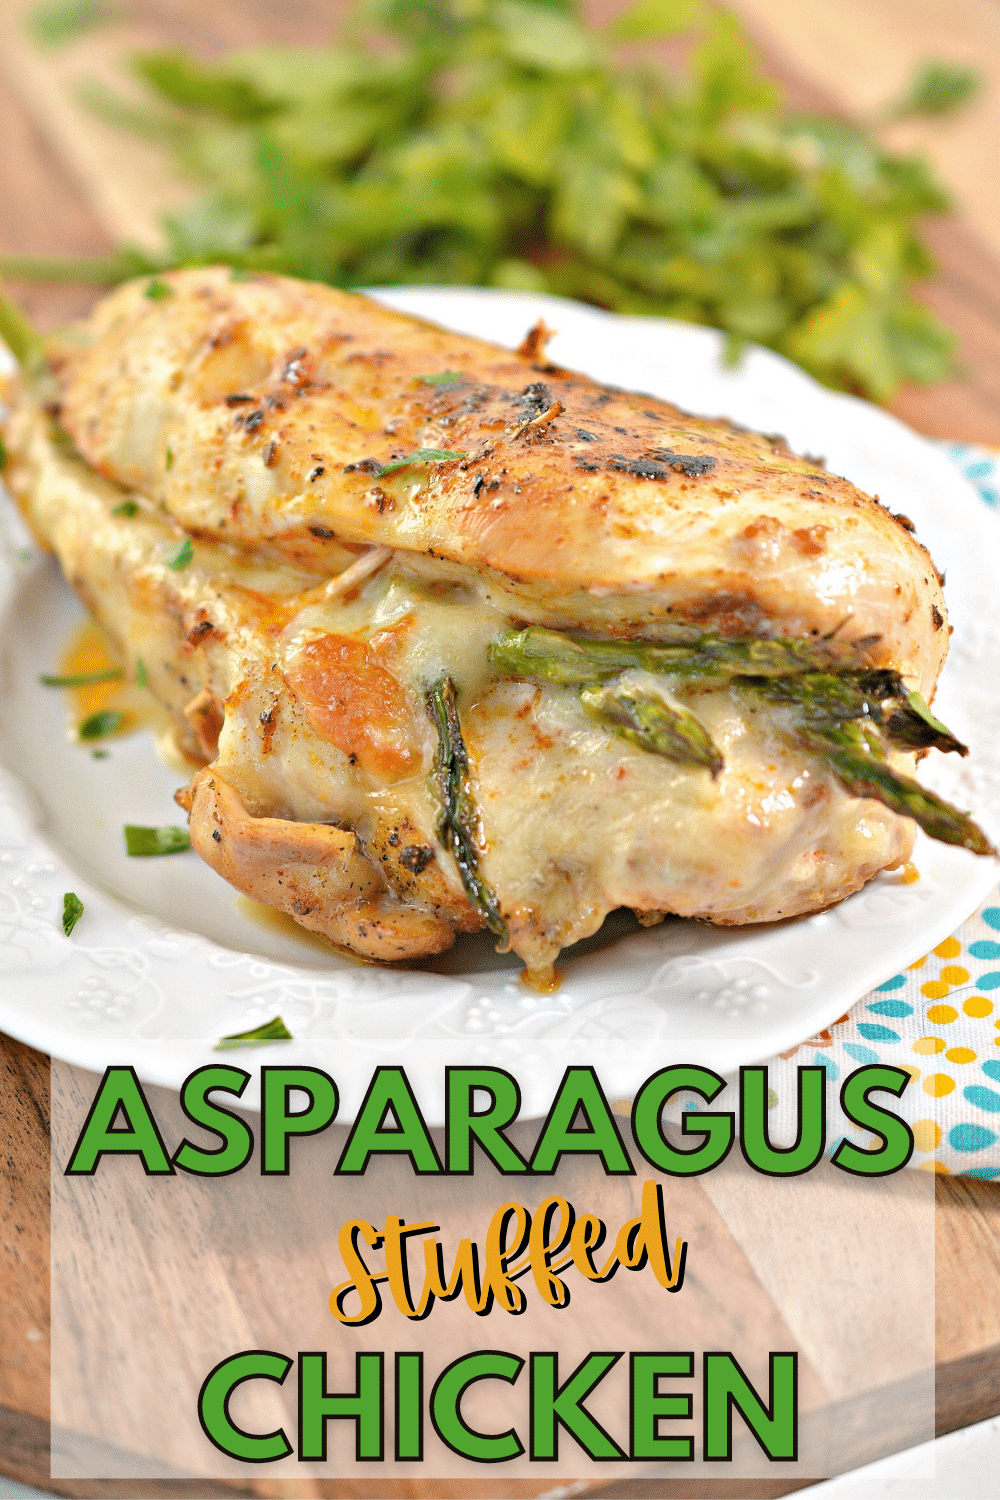 Asparagus Stuffed Chicken is an elegant and low carb dinner recipe that is perfect for guests. The flavors of asparagus, seasonings and chicken is divine. #asparagus #chicken #lowcarb via @wondermomwannab